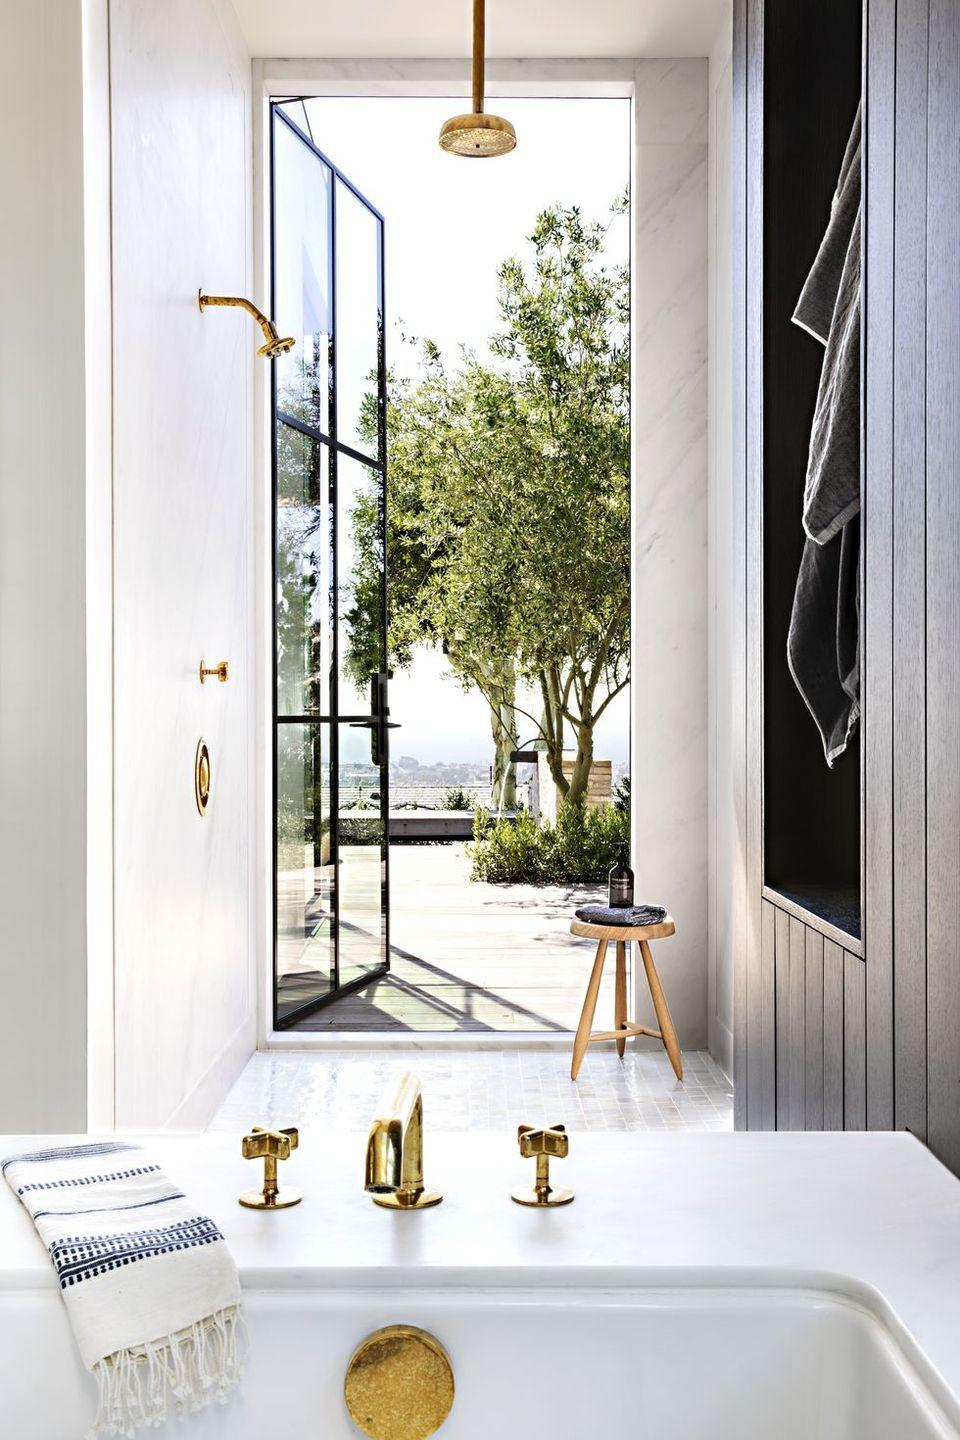 "<p>In the main bath of his California home, architect <a href=""https://www.housebeautiful.com/design-inspiration/house-tours/a28900705/eric-olsen-corona-del-mar-california-home/"" rel=""nofollow noopener"" target=""_blank"" data-ylk=""slk:Eric Olsen"" class=""link rapid-noclick-resp"">Eric Olsen</a> added a glass door that opens to the outside. If you live near the ocean or have a bathroom on the main level of your home, this would be a great way to open up the shower space and make it seem less stuffy.</p>"